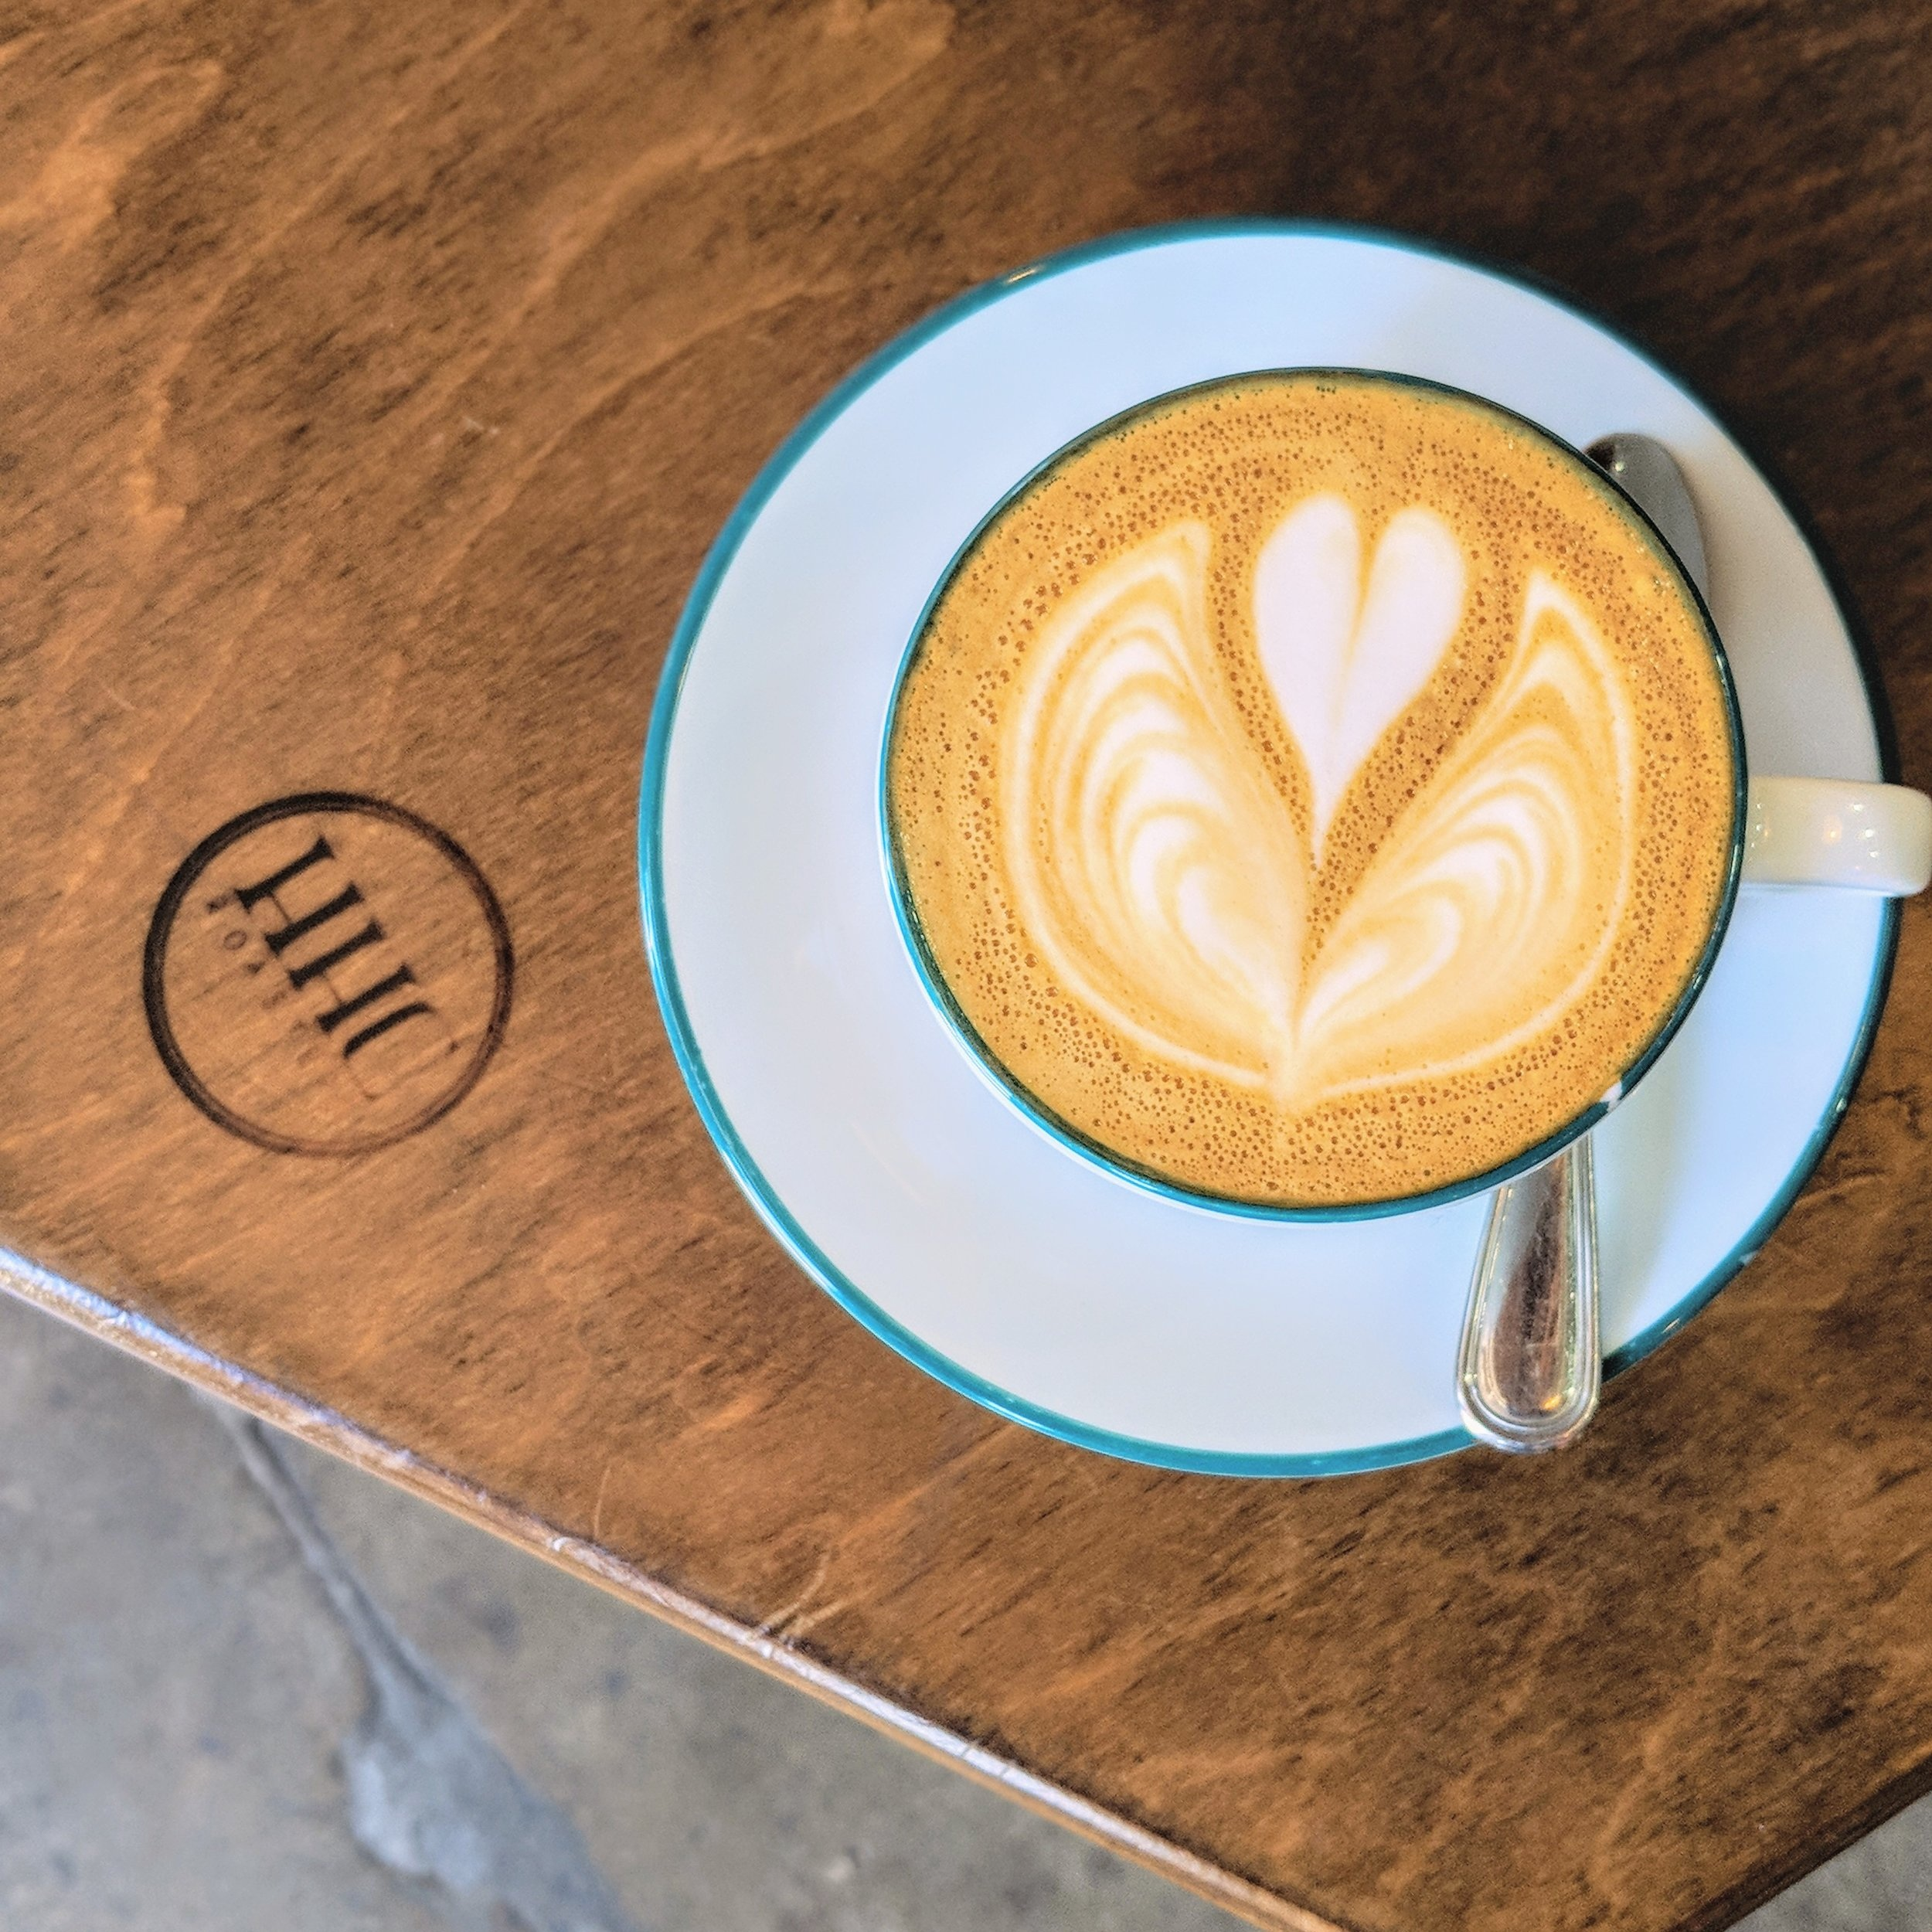 The HHC cap is a standard double-shot cappuccino with your choice of milk.